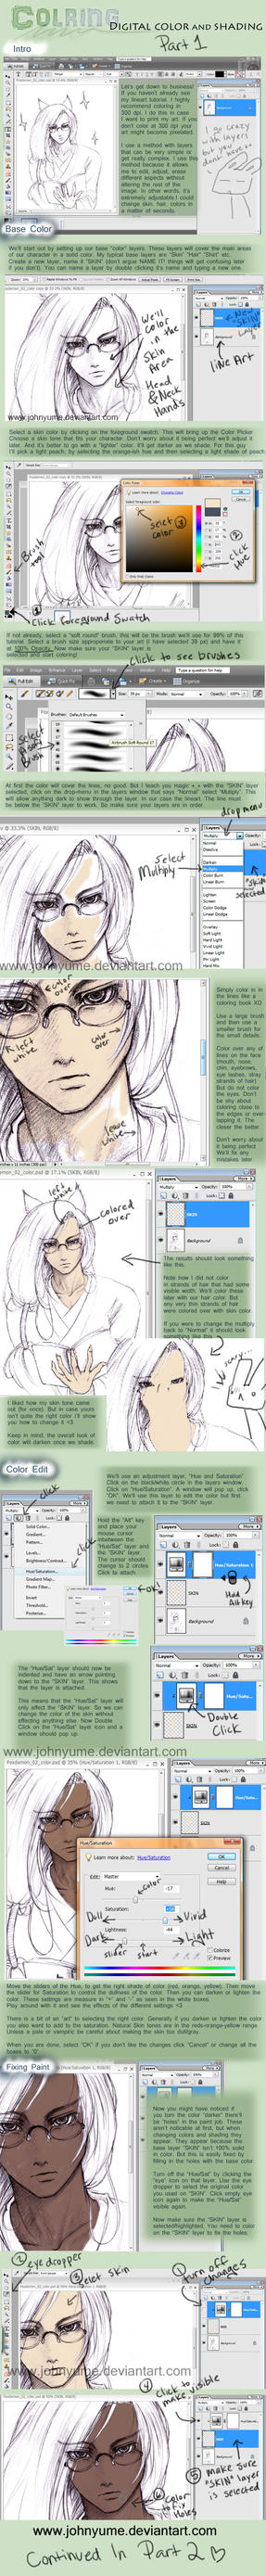 Coloring Tutorial -- Part 1 by JohnYume